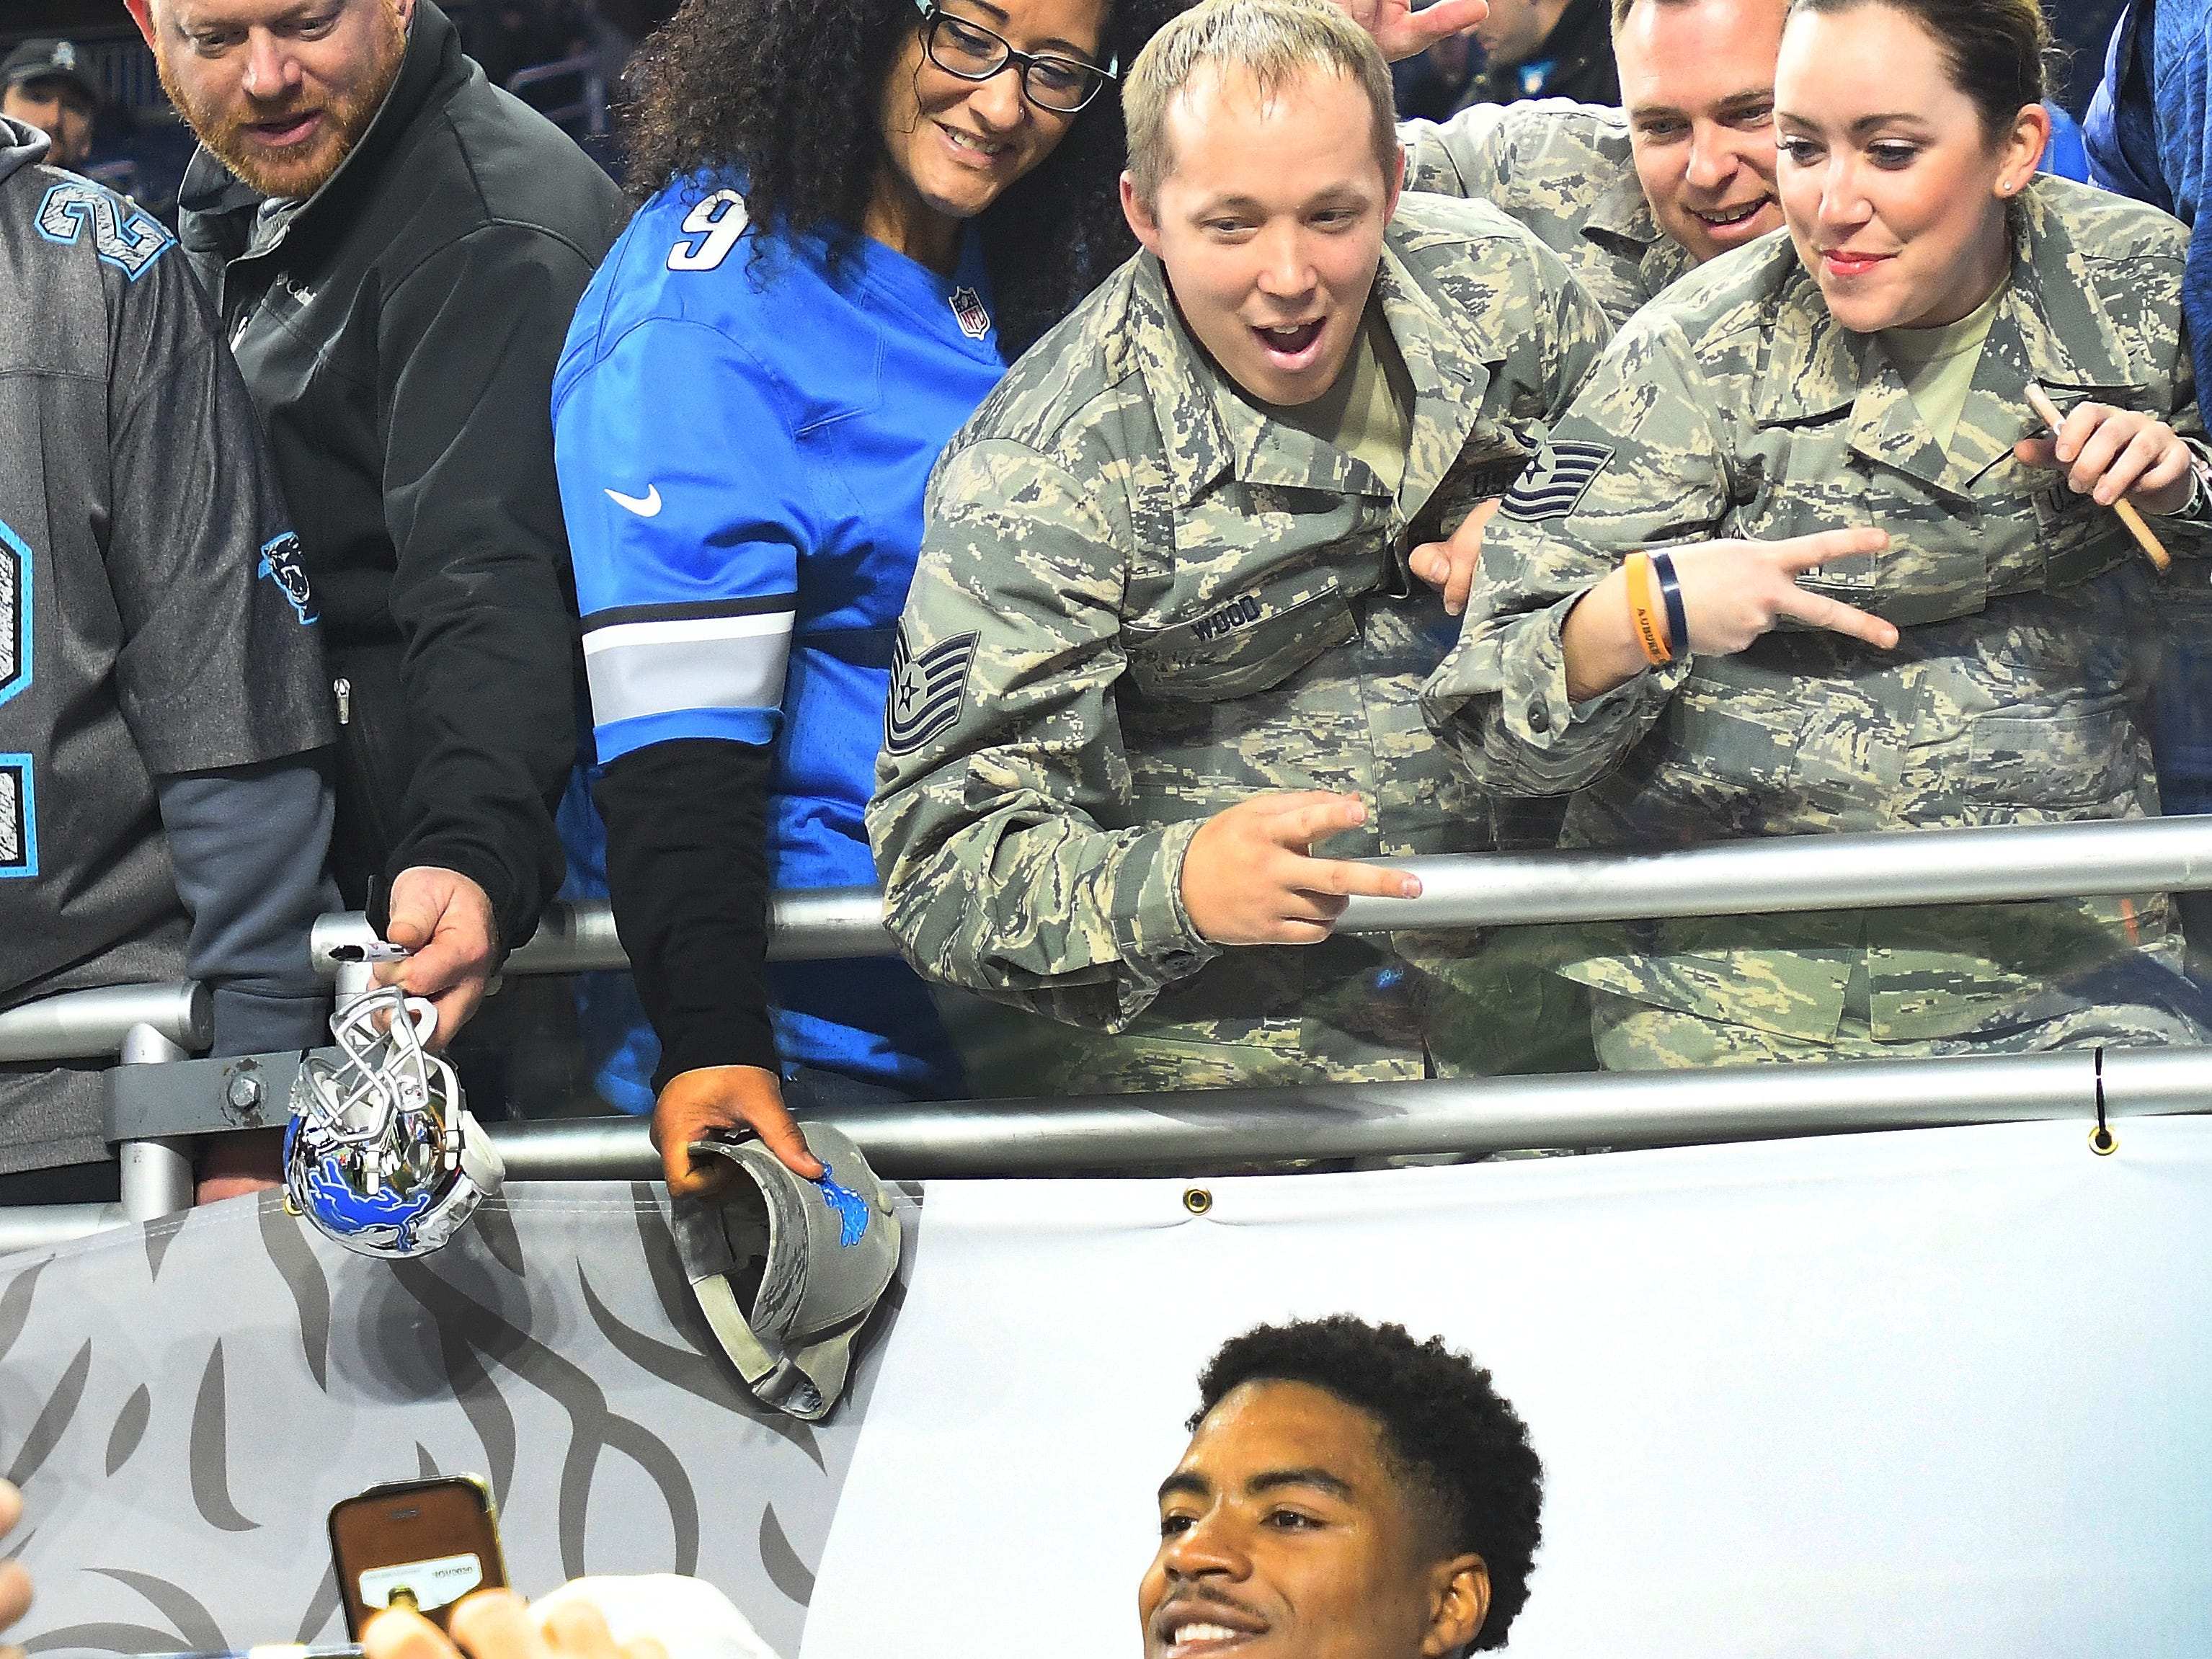 U.S. Air Force technical sergeants Josh Wood, Zachary Carey and Holly Graham gets a selfie with Detroit Lions cornerback DeShawn Shead before the NFL Salute to Service game against the Carolina Panthers.